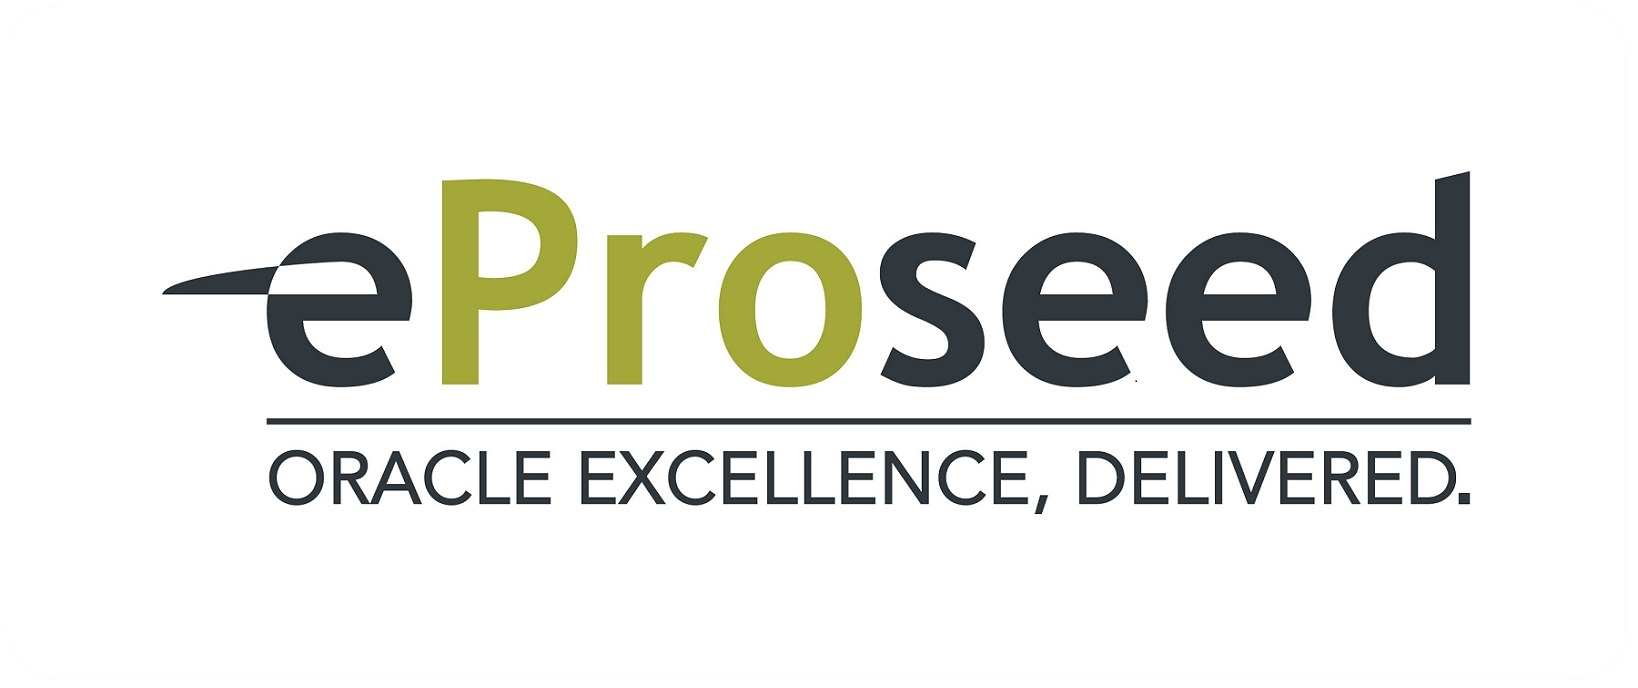 eProseed helps OneLife's digital transformation